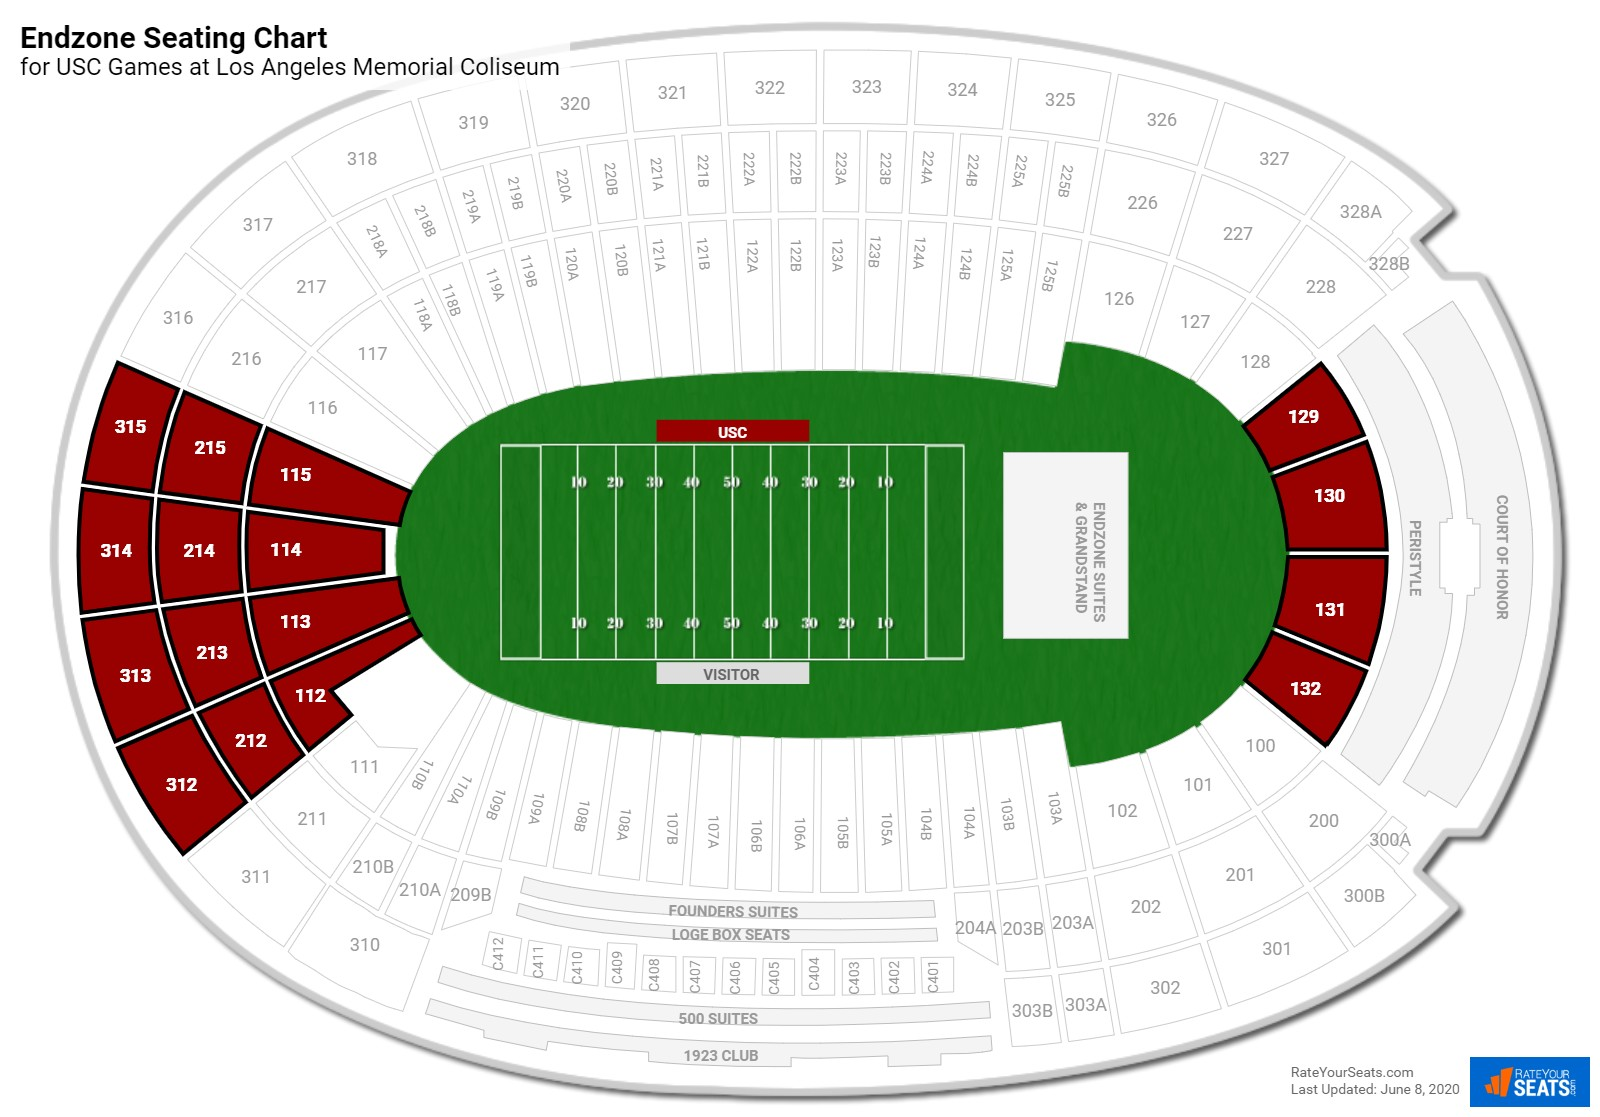 Los Angeles Memorial Coliseum Endzone seating chart